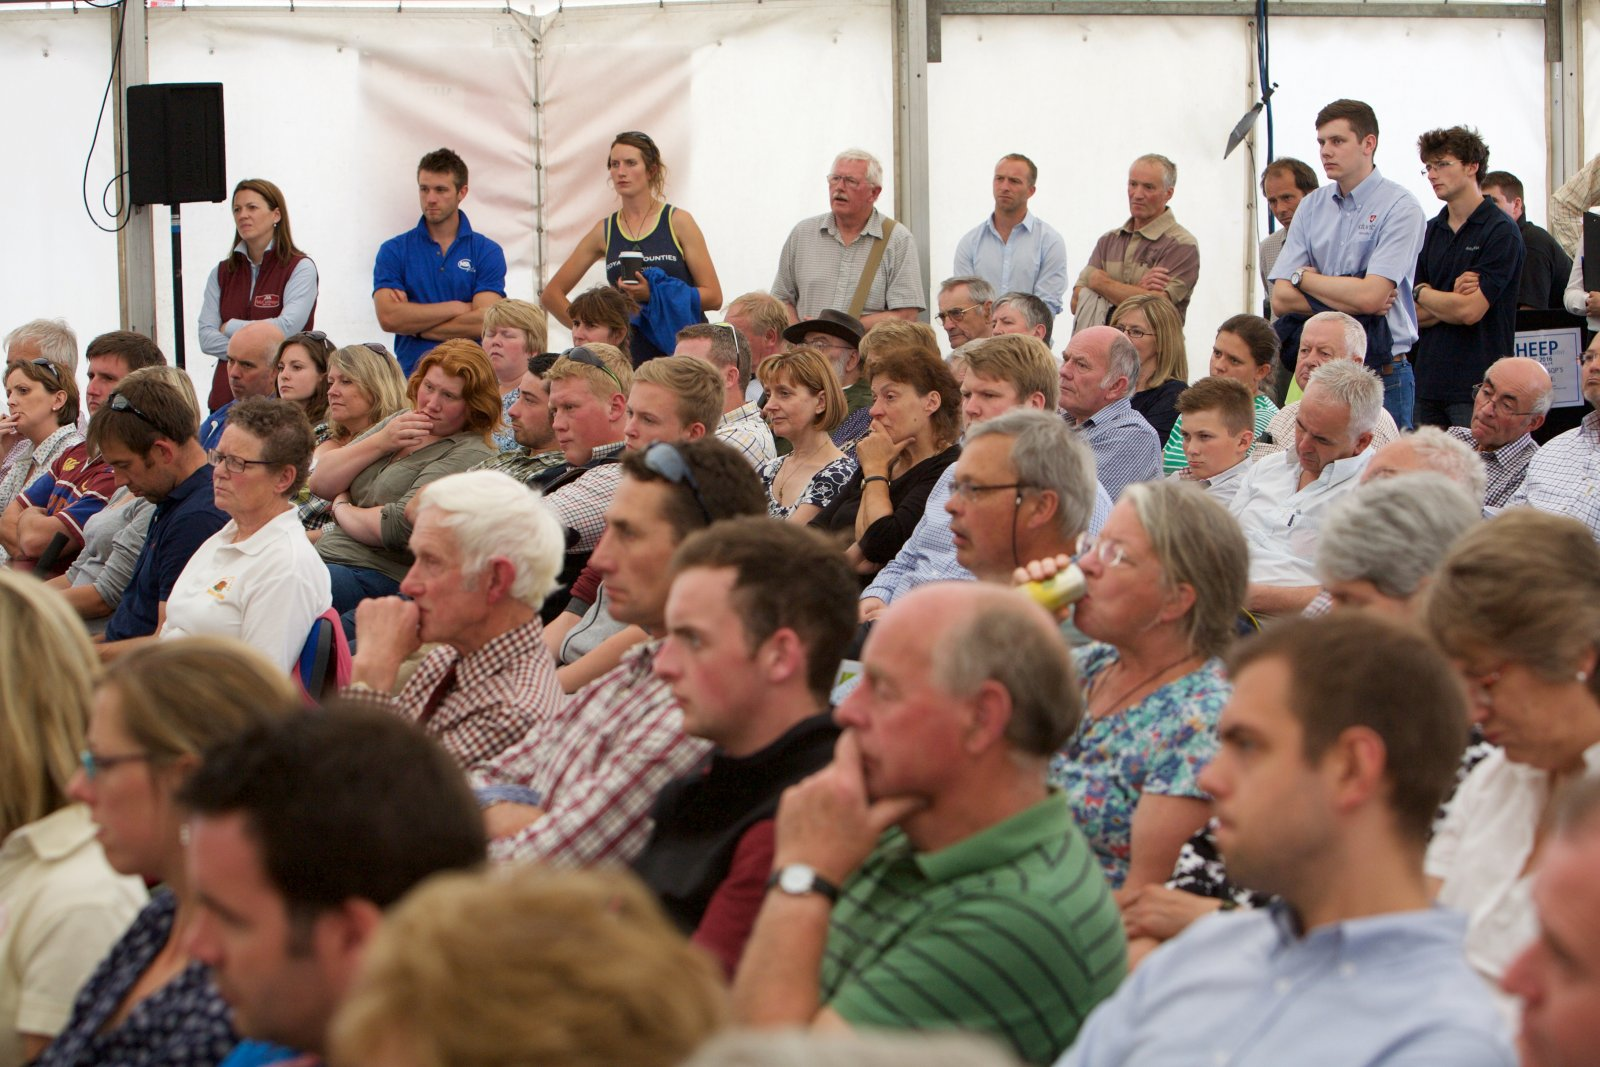 a line-up of interesting speakers and relevant topics ensured the Seminar area was packed during the day